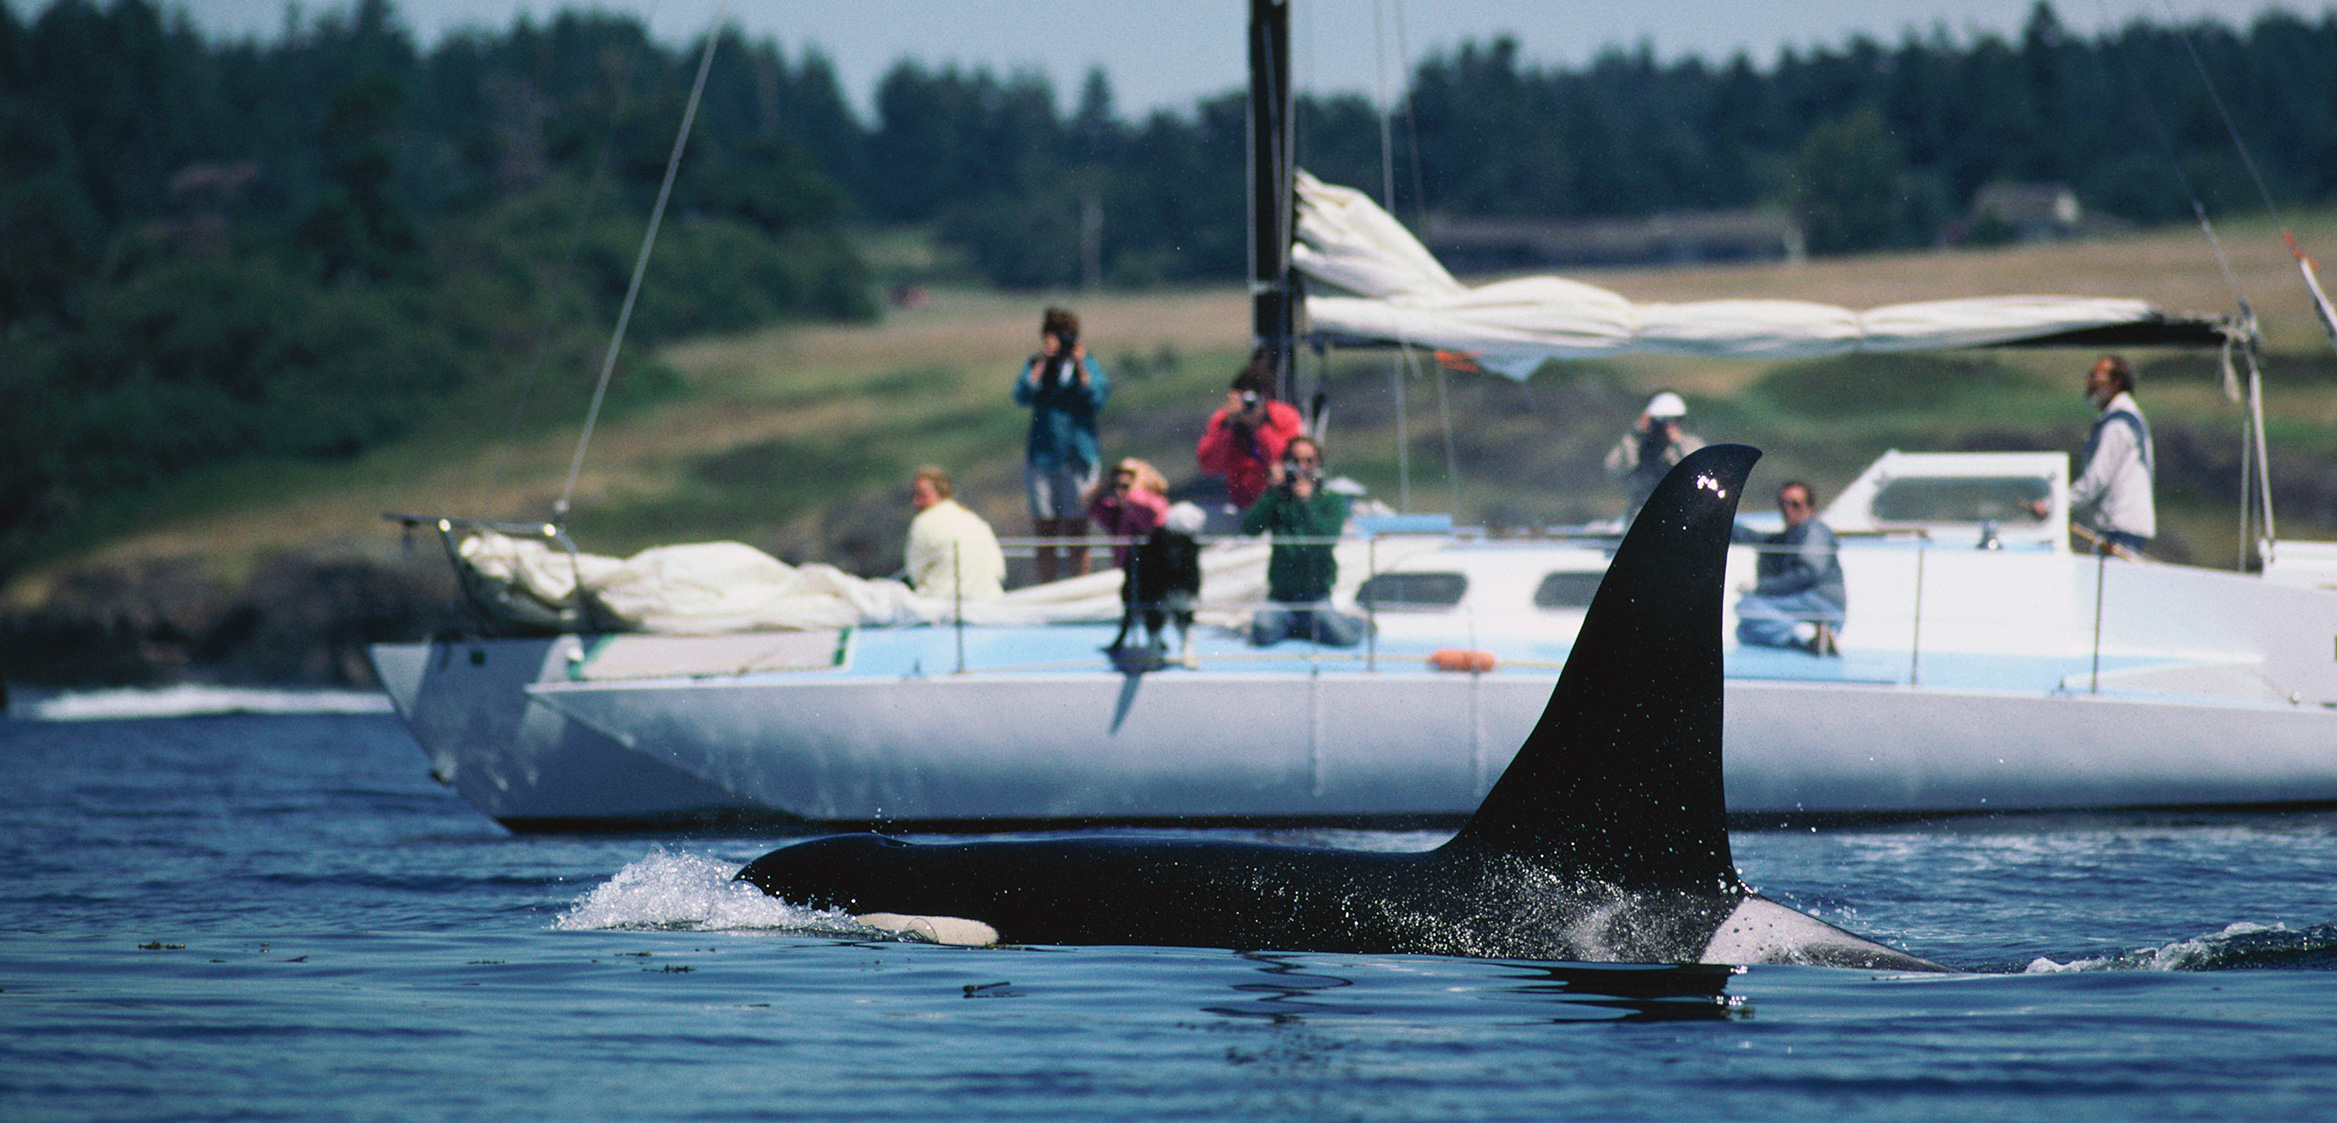 A resident killer whale swims in the waters off Washington State. Photo by Hiroya Minakuchi/Minden Pictures/Corbis